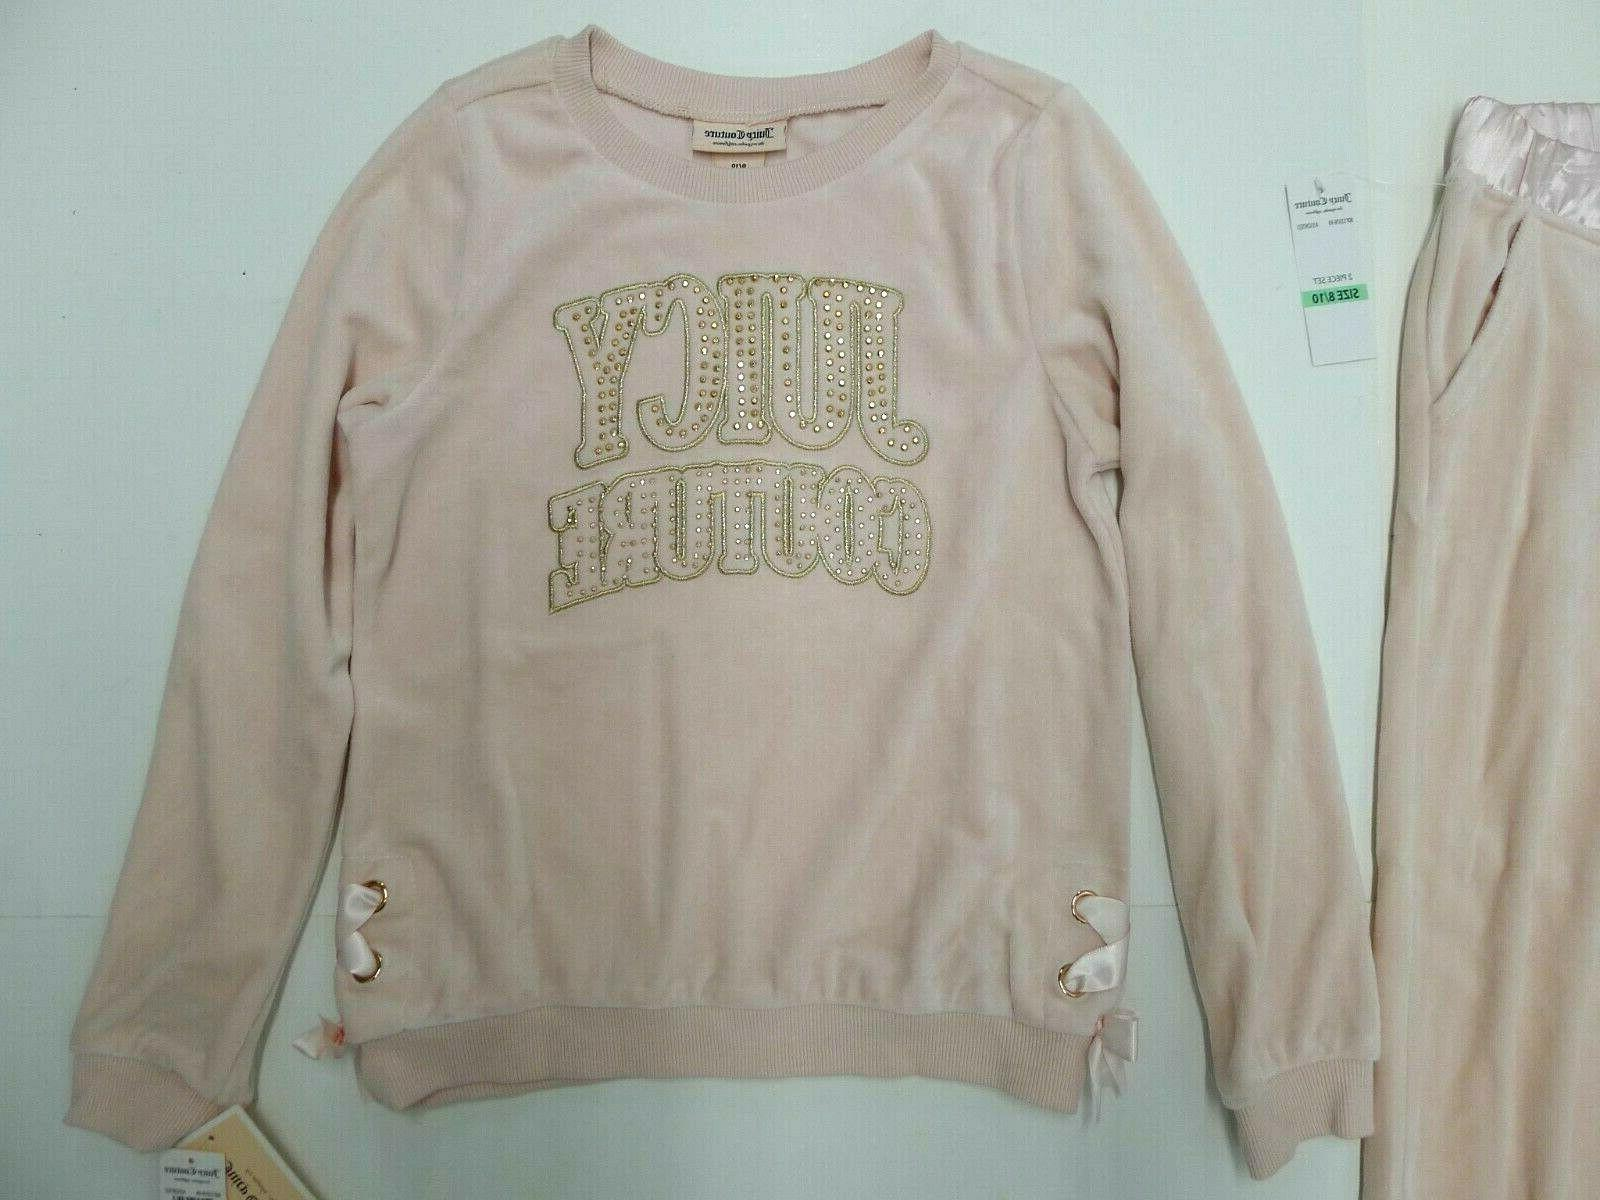 NWT Juicy Couture Girls 2 Jog Pink